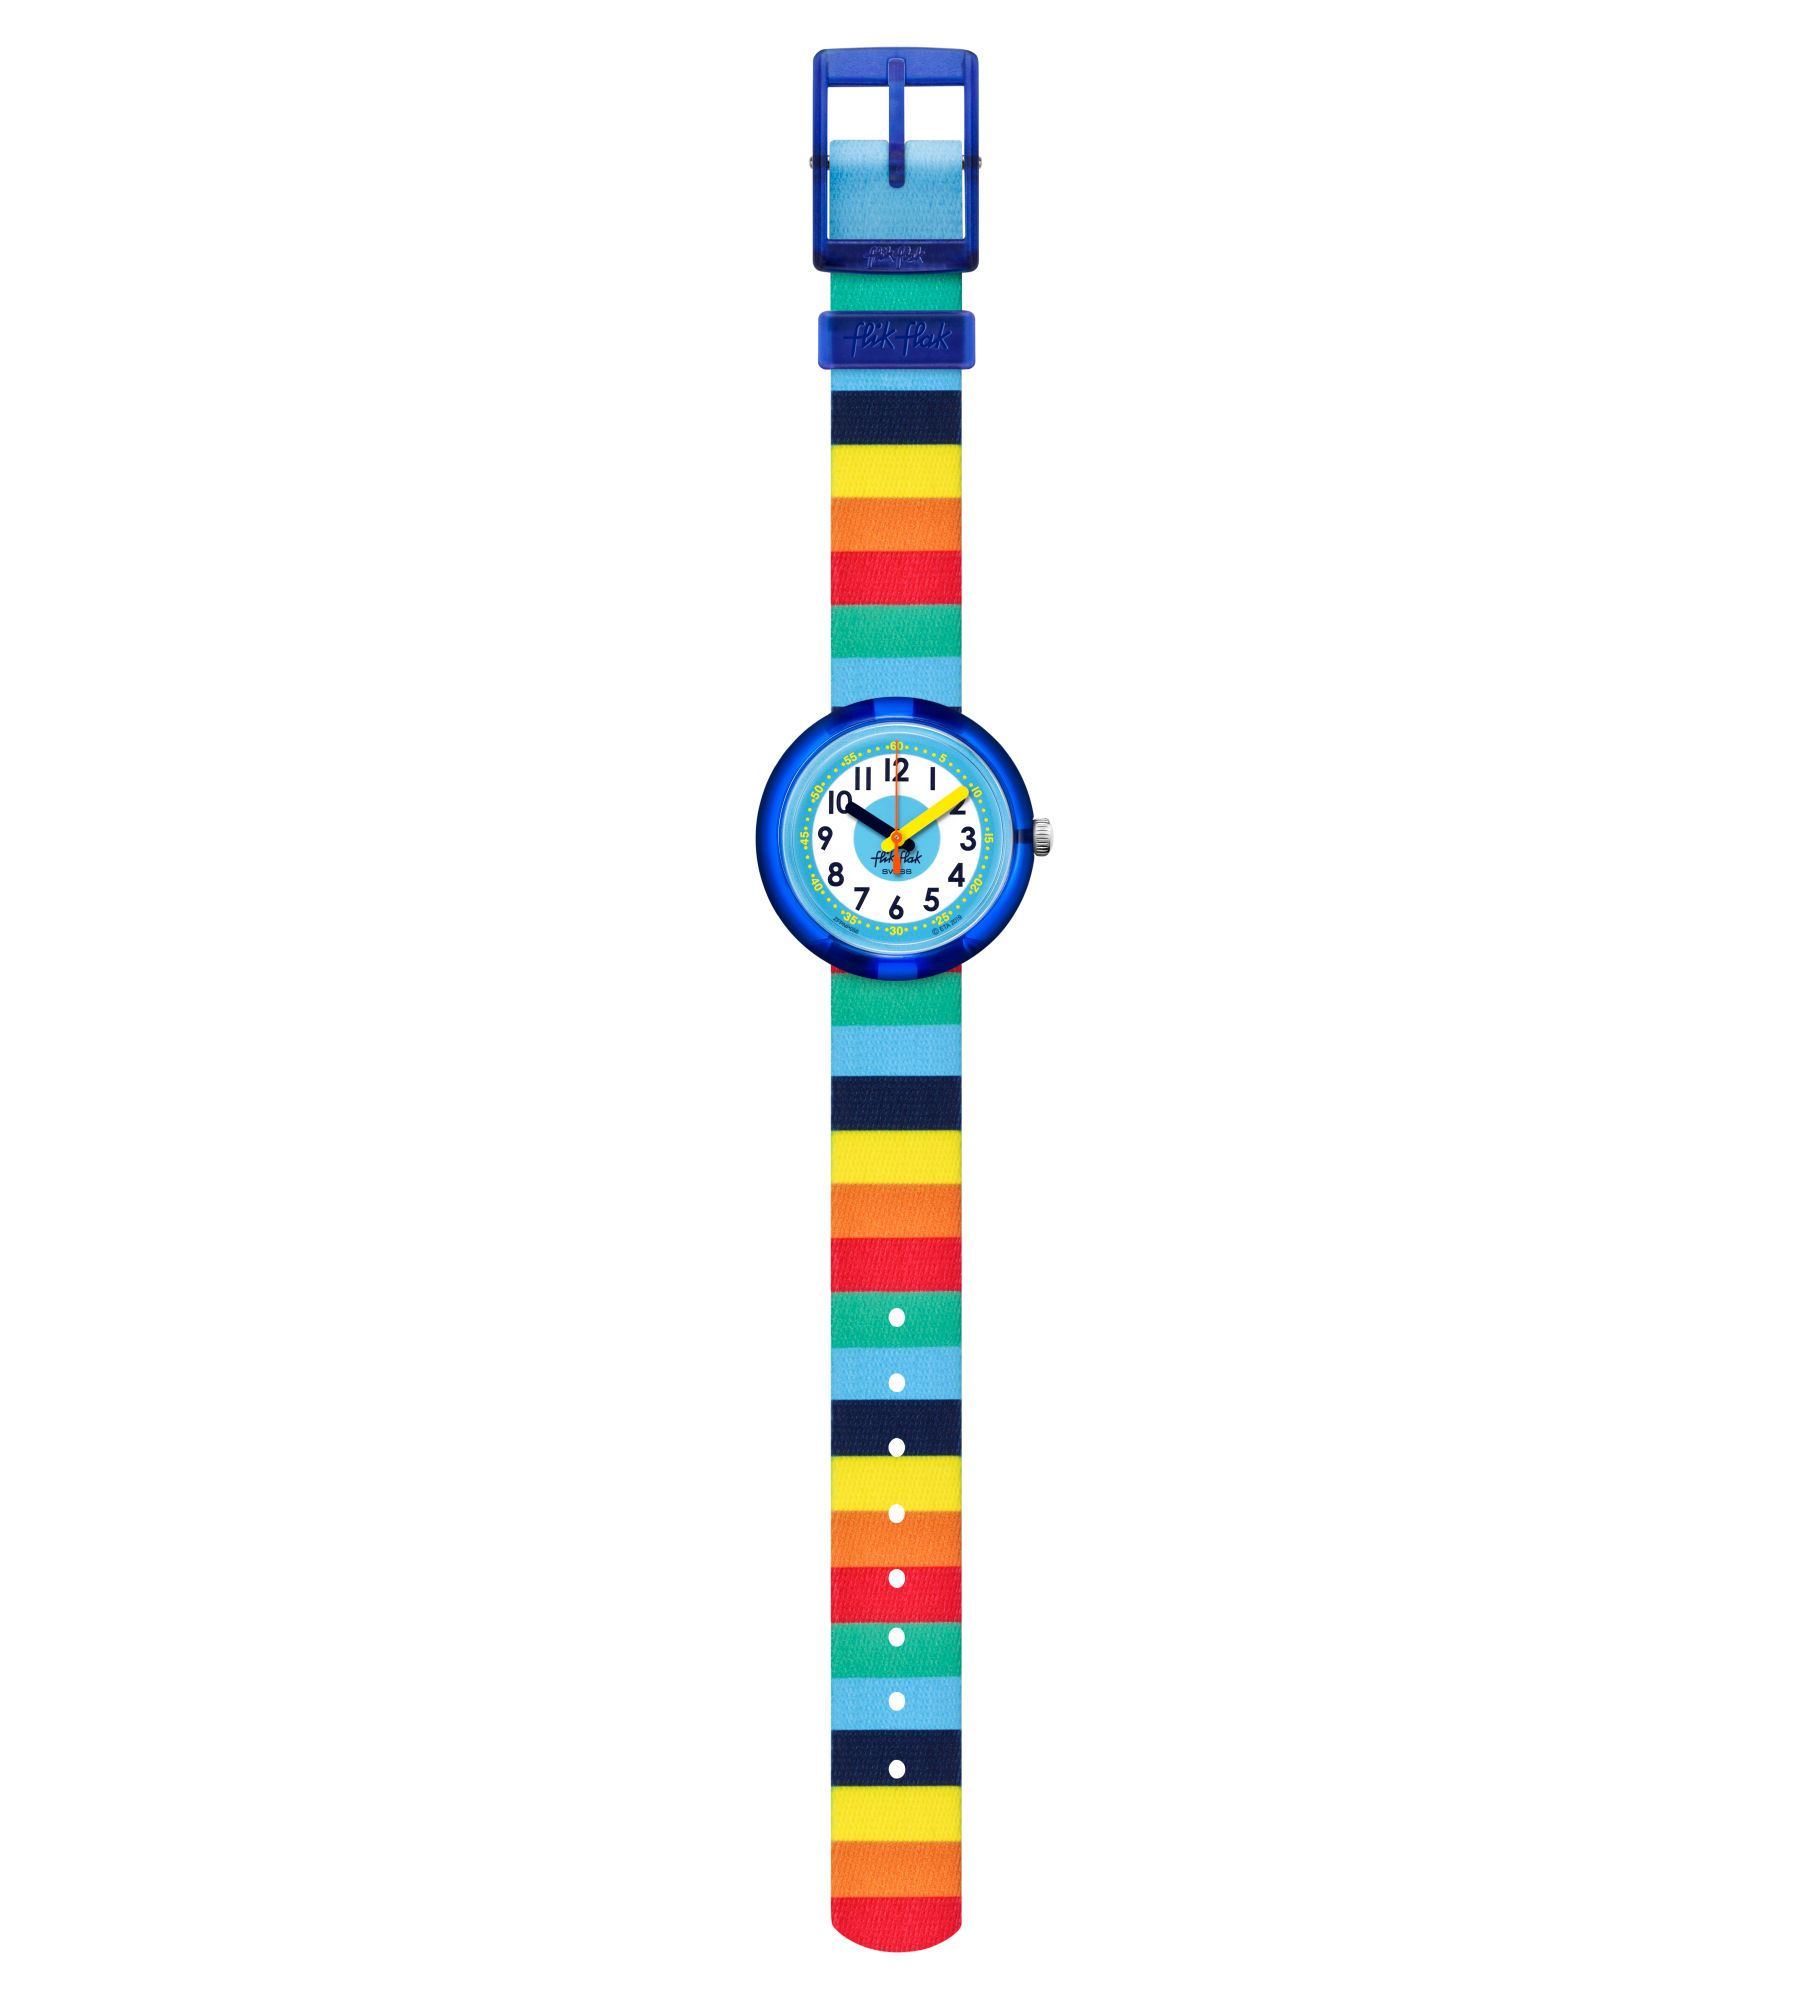 Swatch France Flik Flak Power Time Stripybow Fpnp056